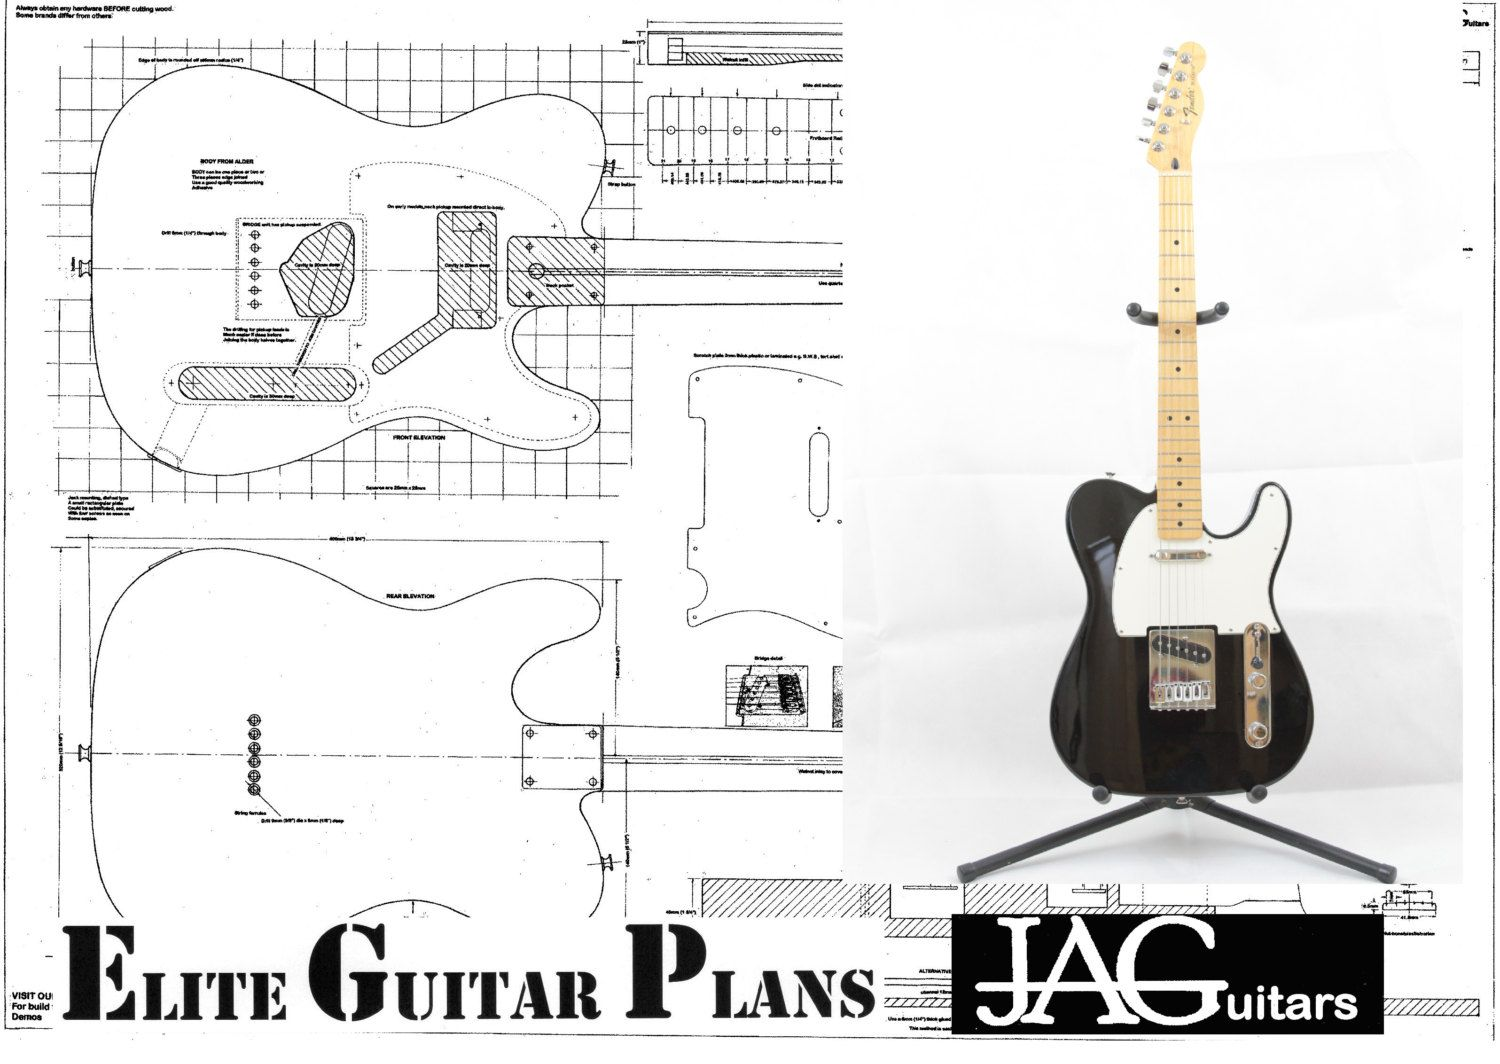 Rolled Plan To Build Telecaster Electric Guitar Diy Project Or Electrical Schematic And Blueprint Reading Course Syllabus Full Size A